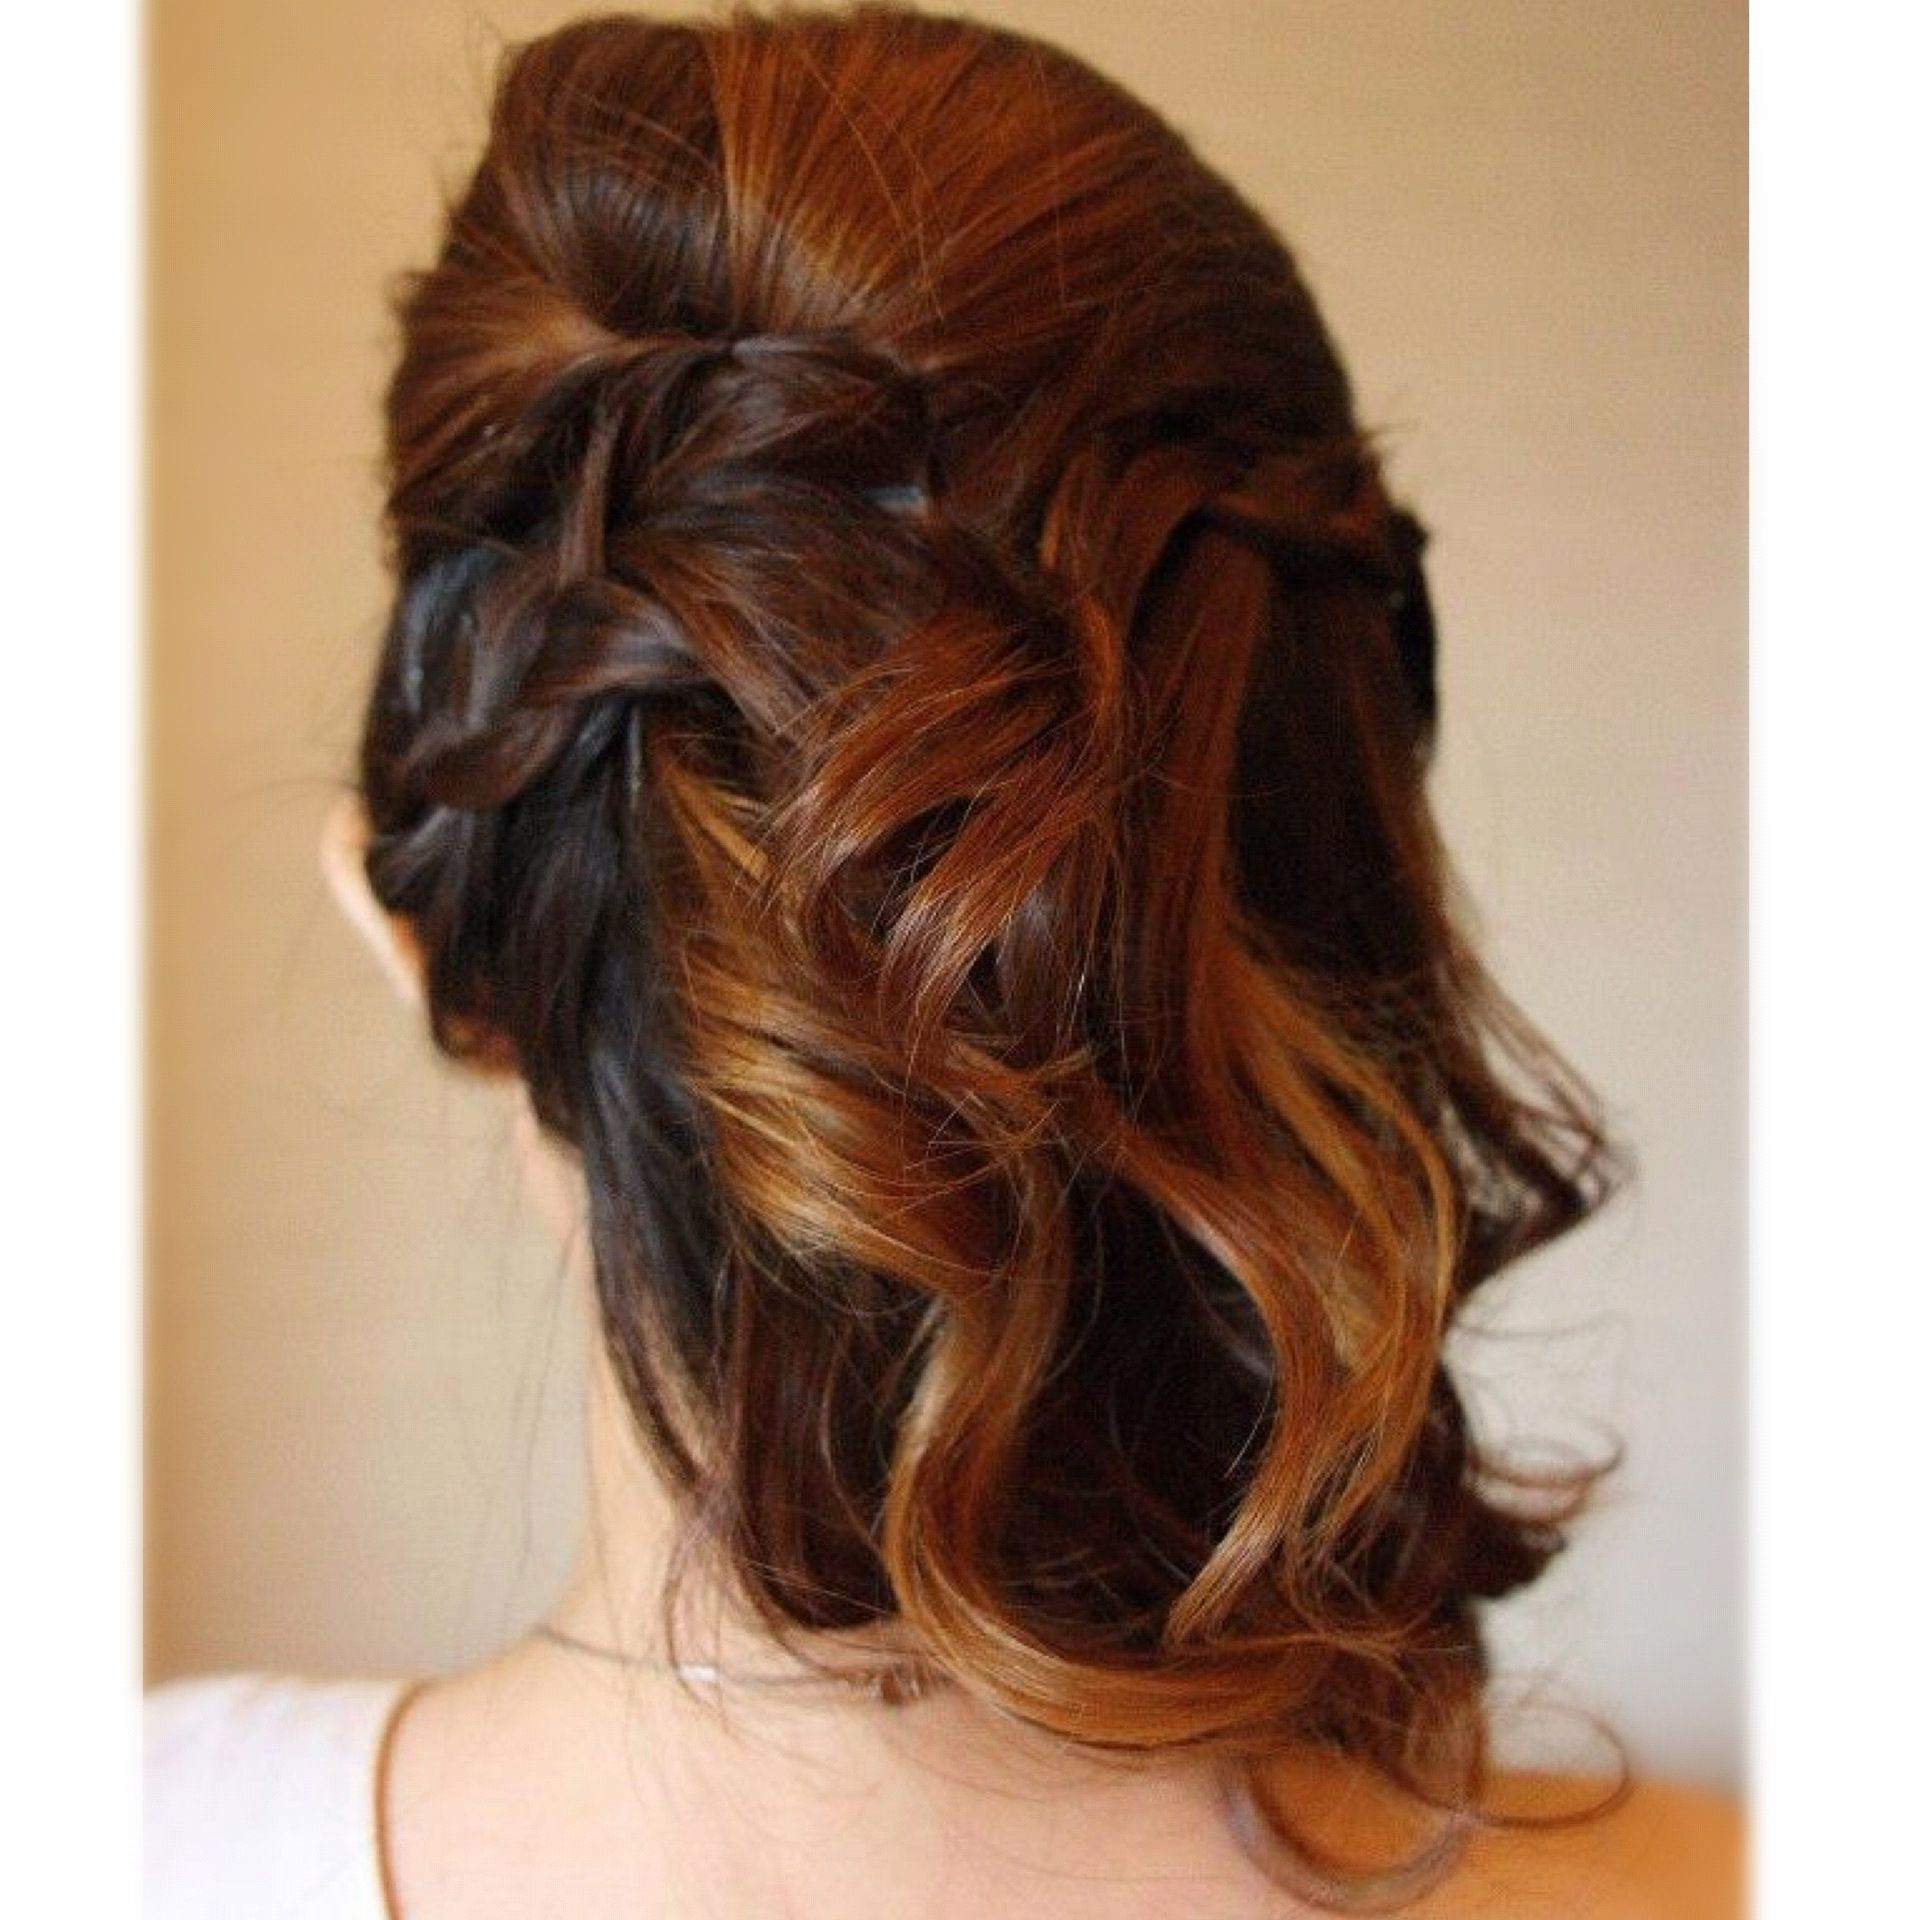 Bridesmaidus updo like facebookbehindthesceness now